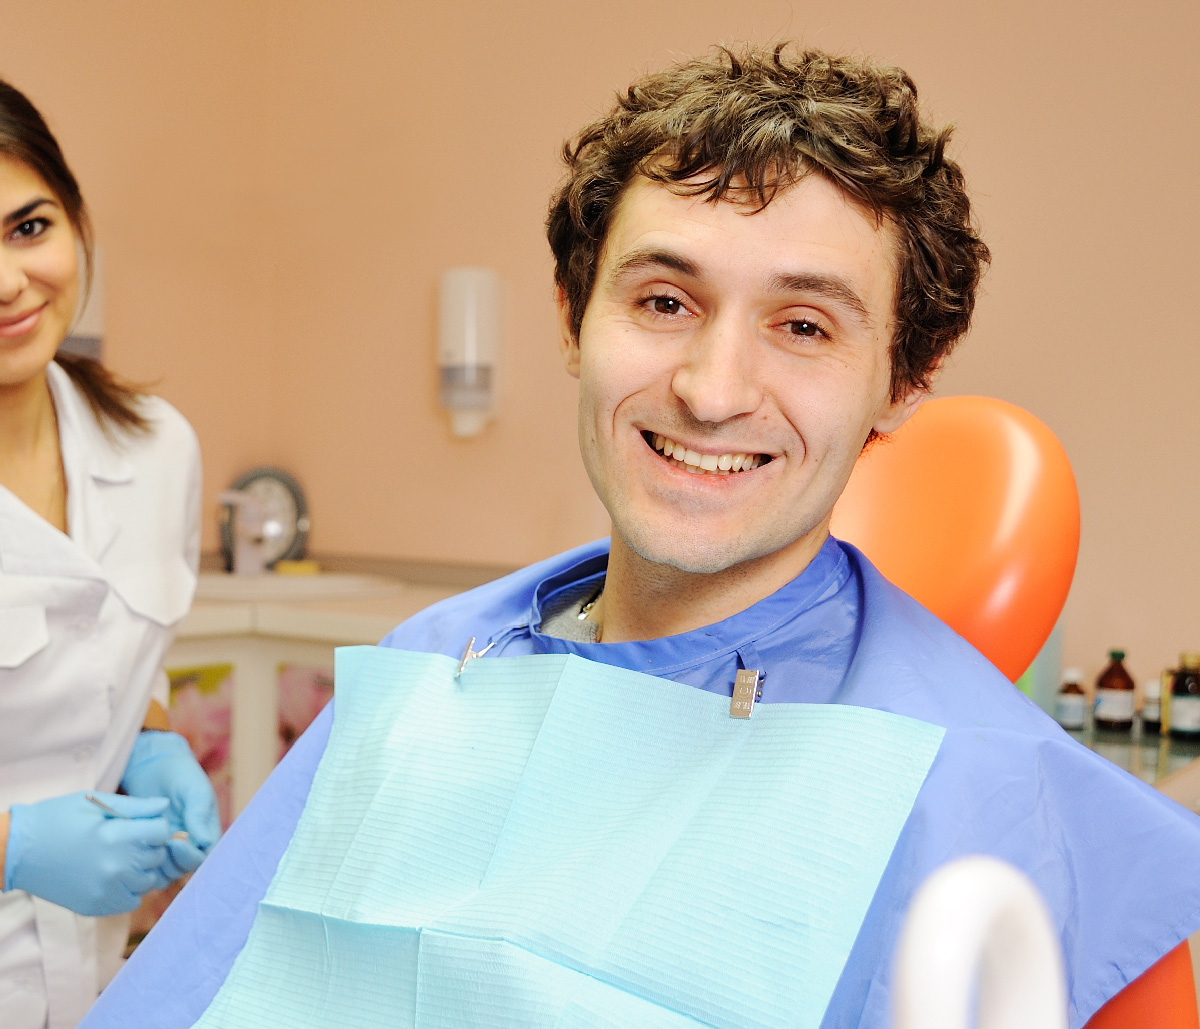 David Son, DDS Dentist in Irvine, CA is talking about why composite fillings have replaced metal amalgam fillings in recent years